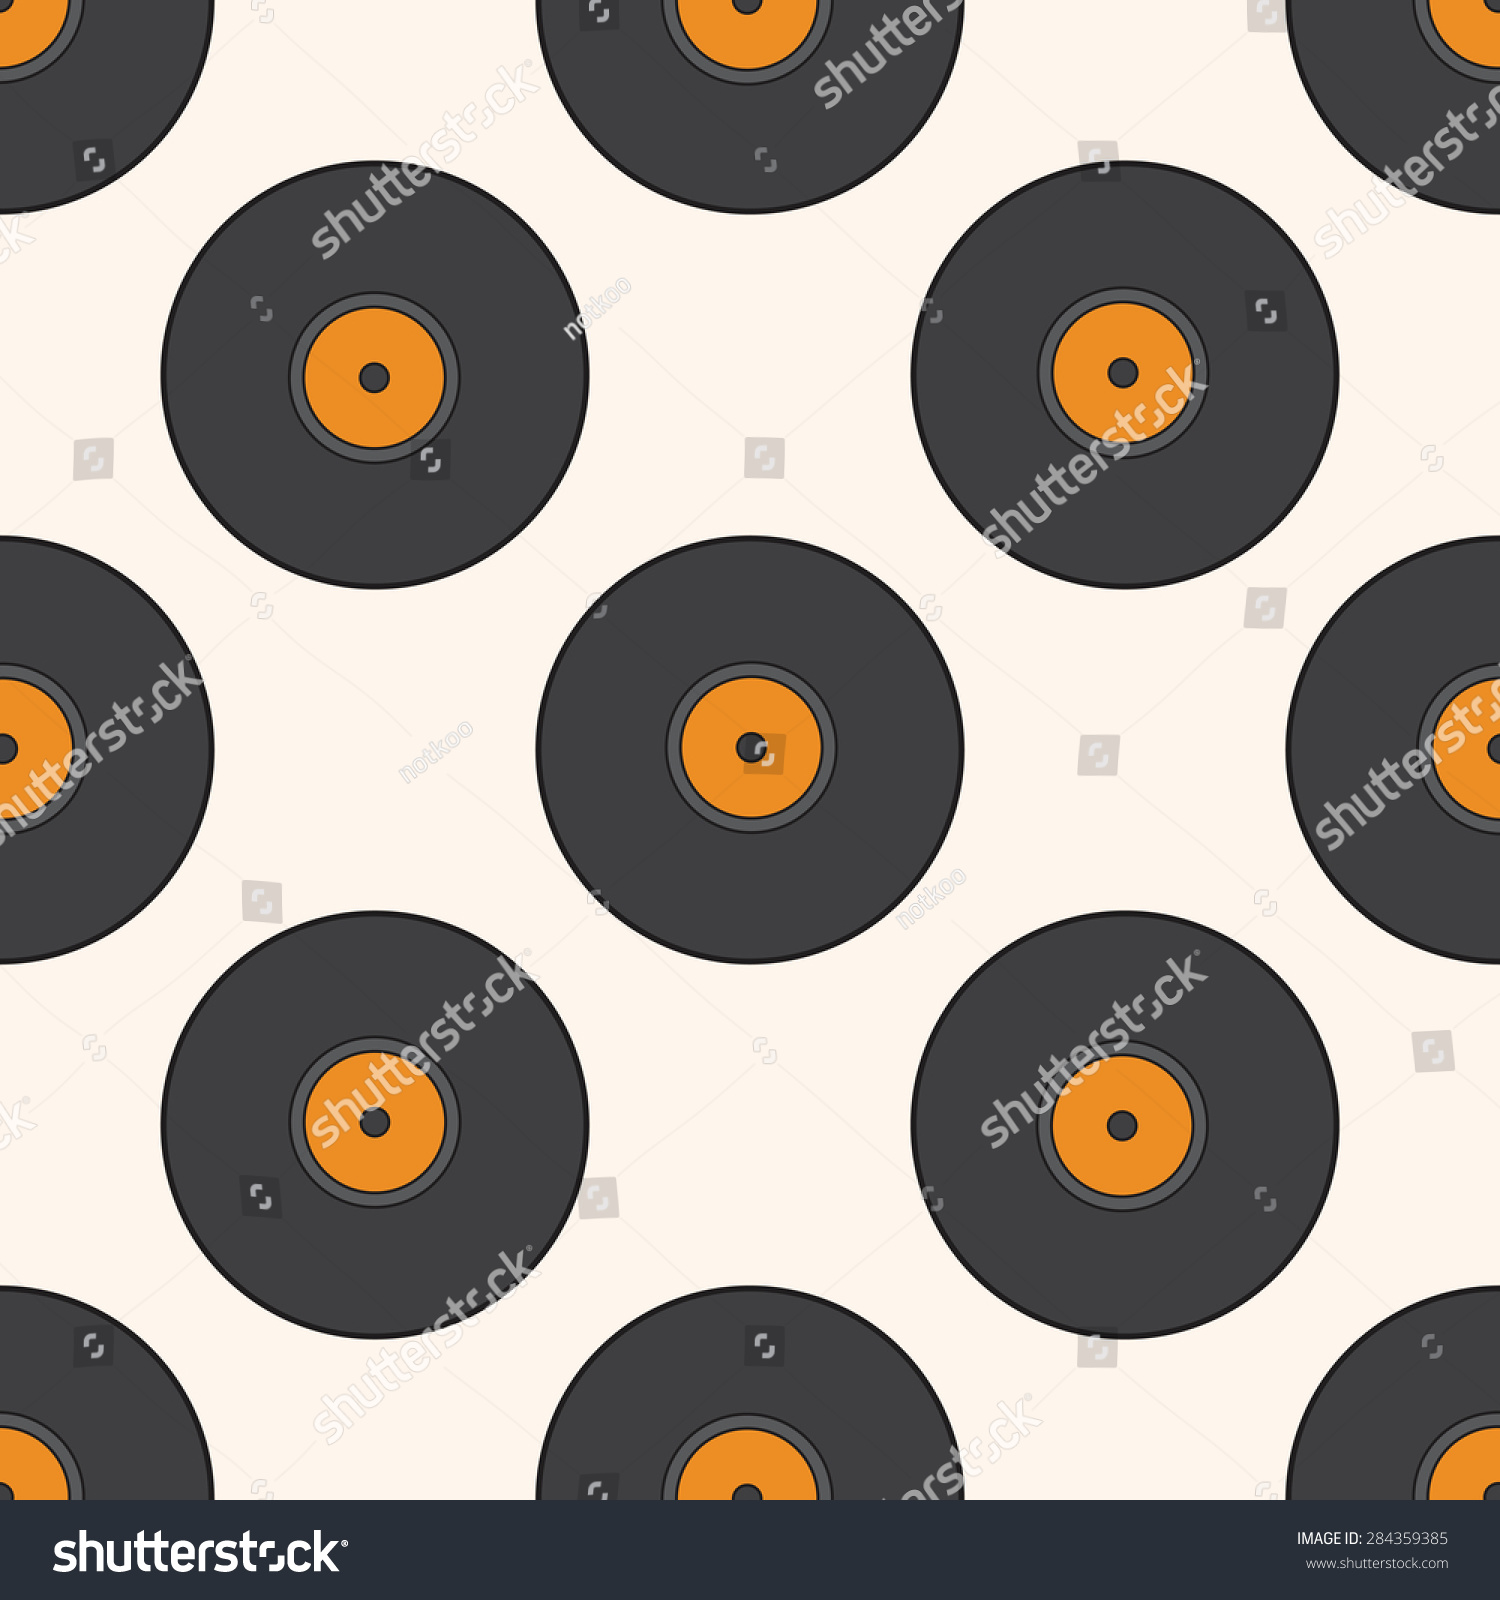 Fantastic Wallpaper Music Disk - stock-photo-rock-music-disk-cartoon-seamless-pattern-background-284359385  Trends_7035100.jpg